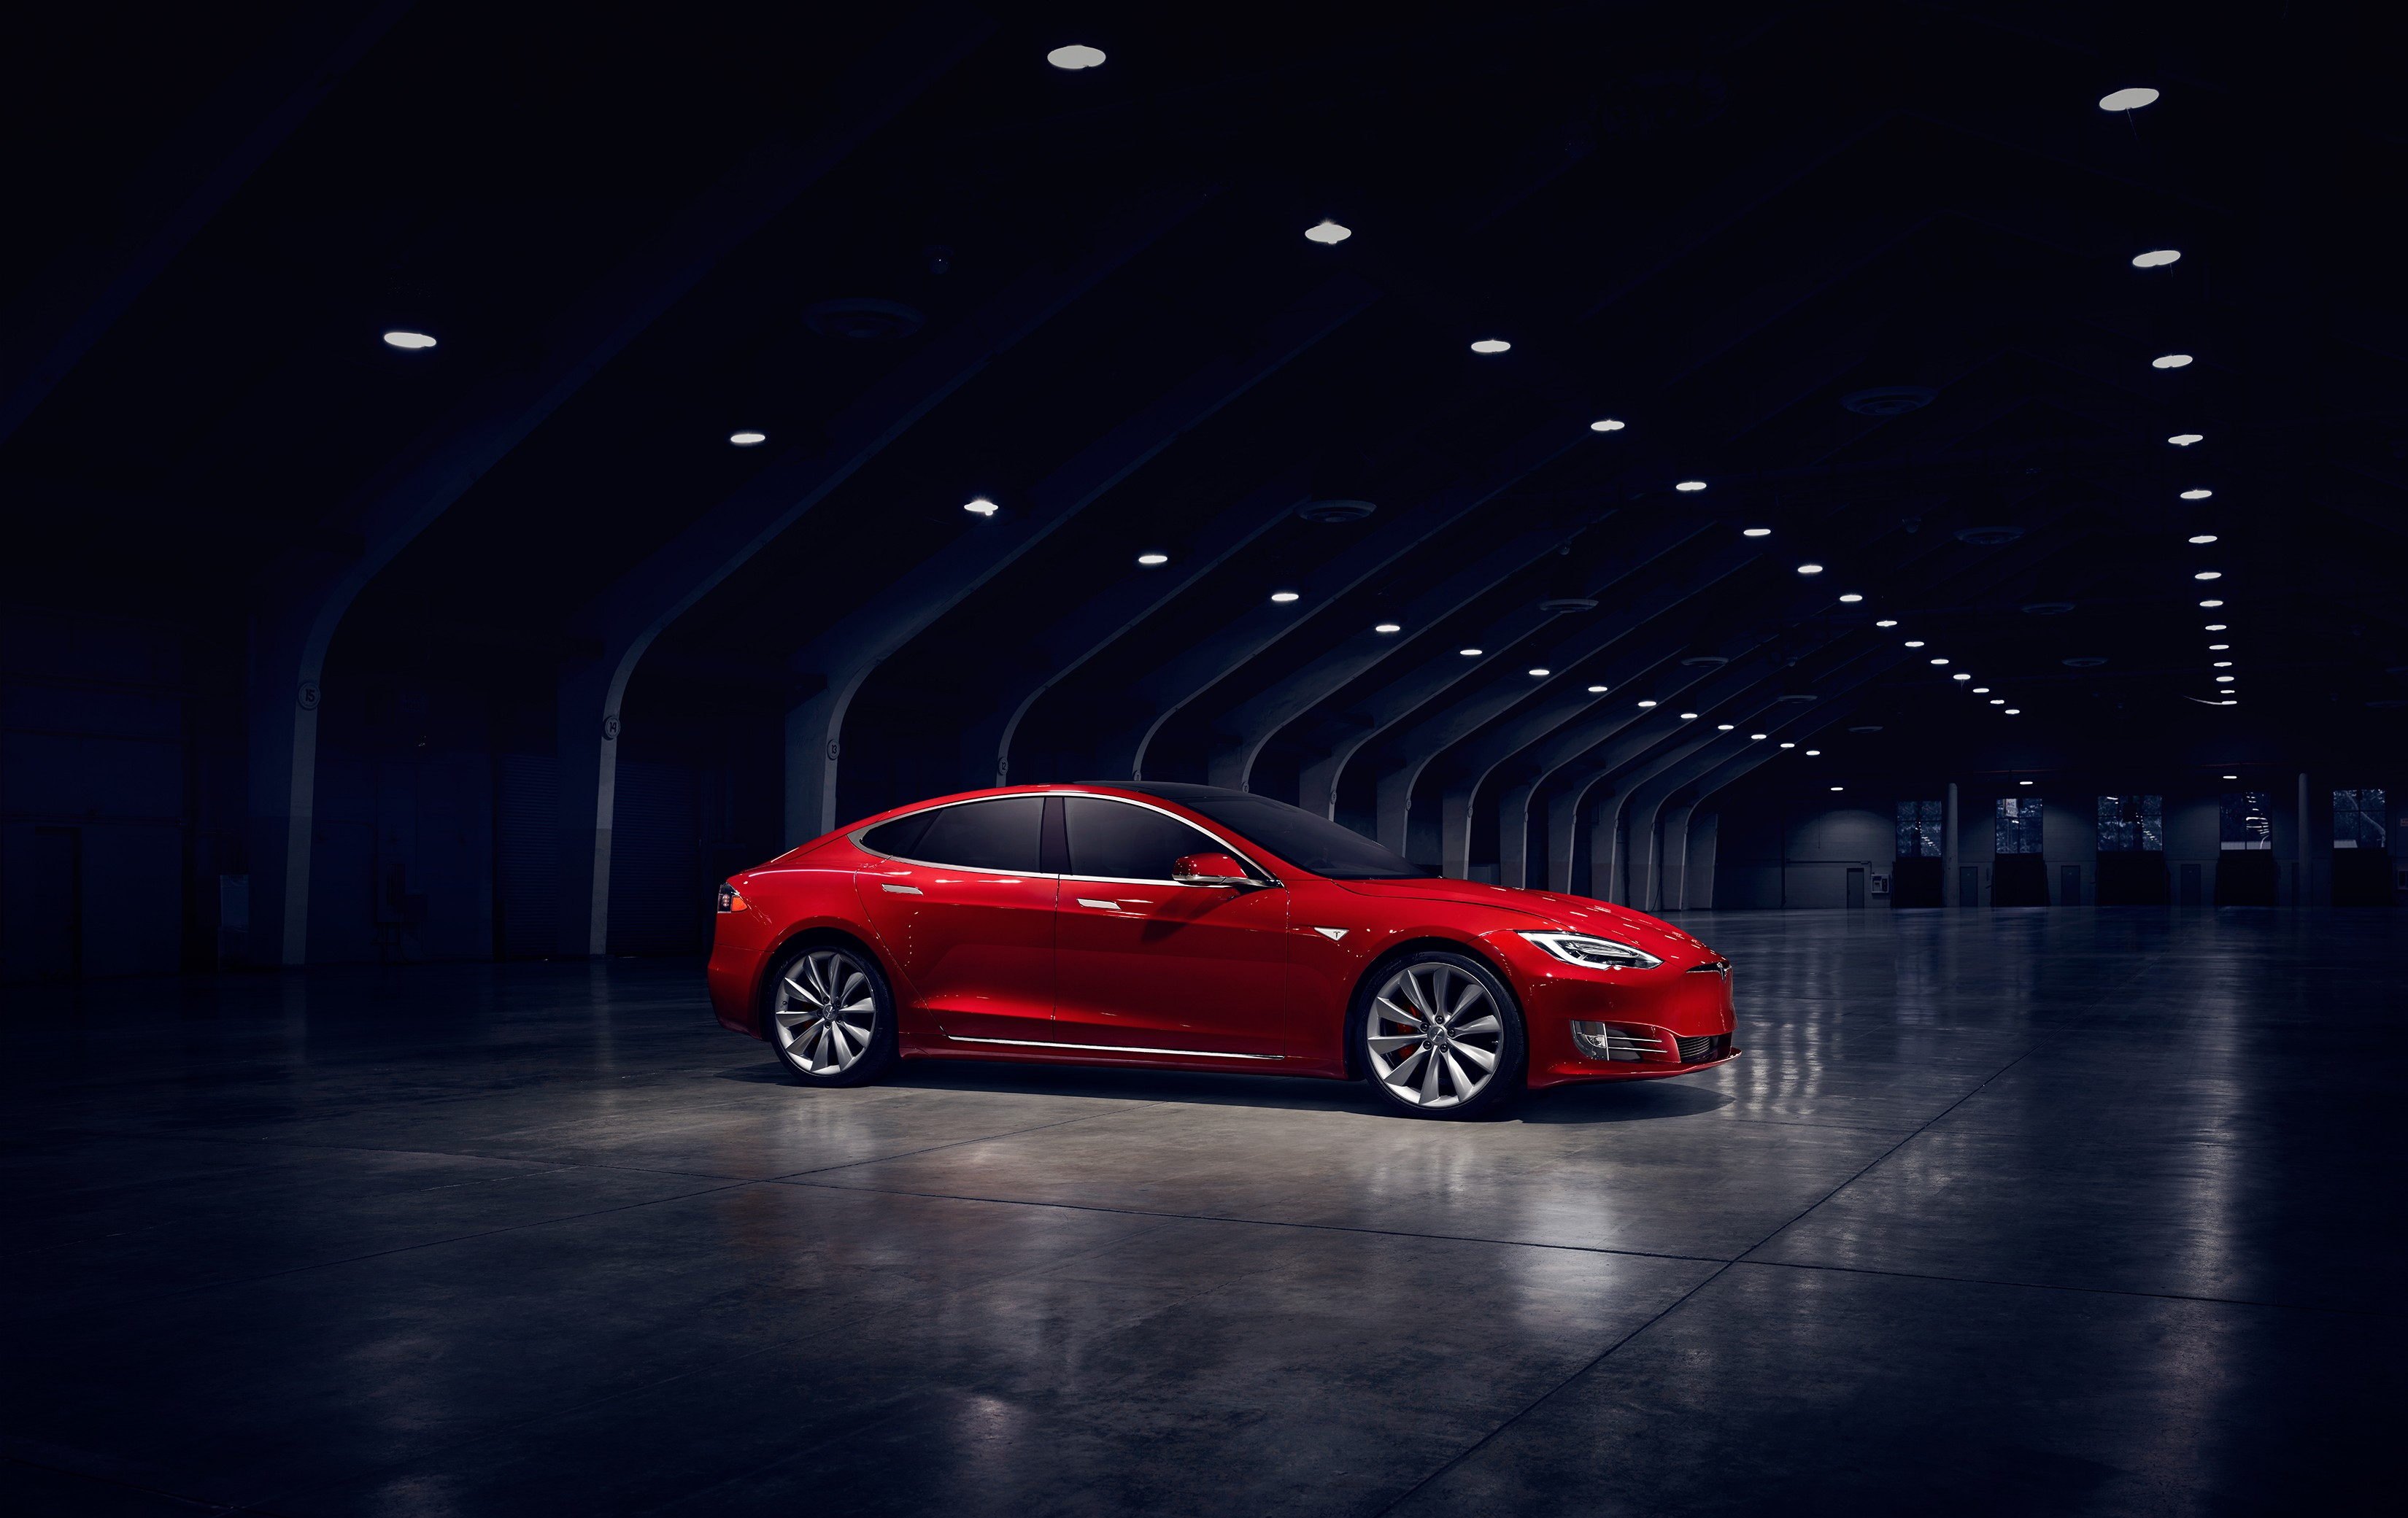 Tesla Announces New Entry Level Model S With 60 Kwh Battery Pack